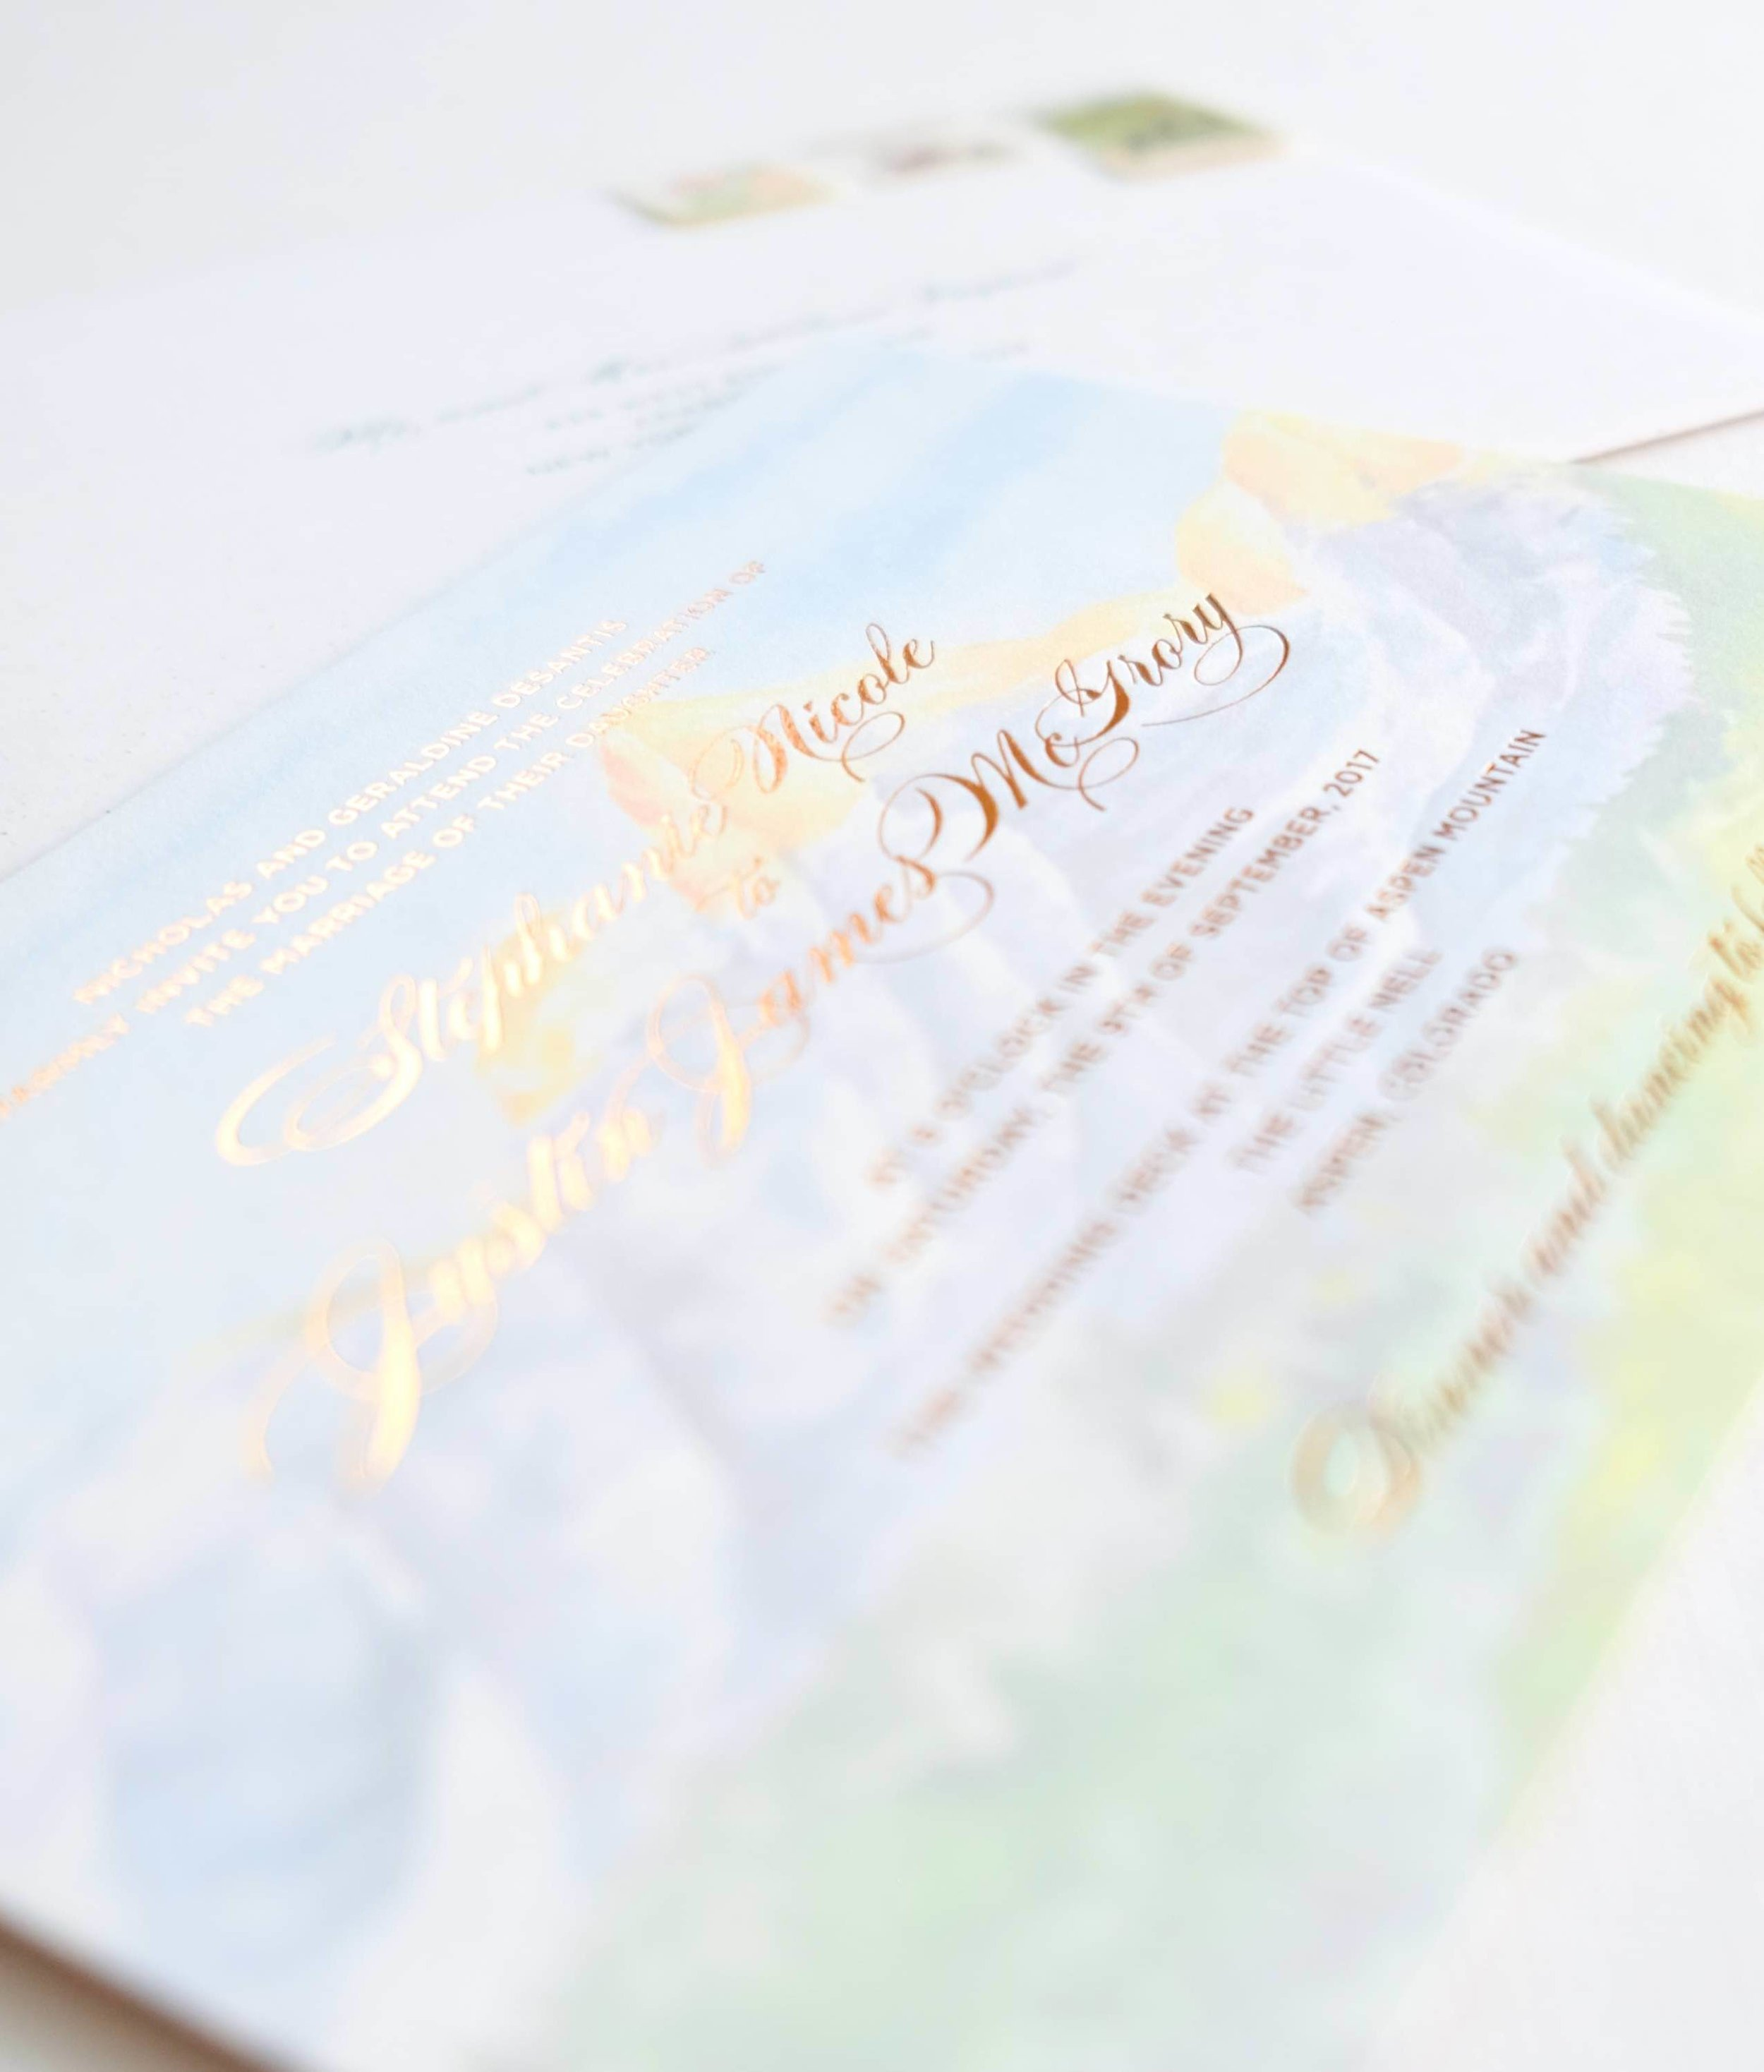 Copper foil stamped over a watercolor painting of the Aspen landscape | www.chavelli.com